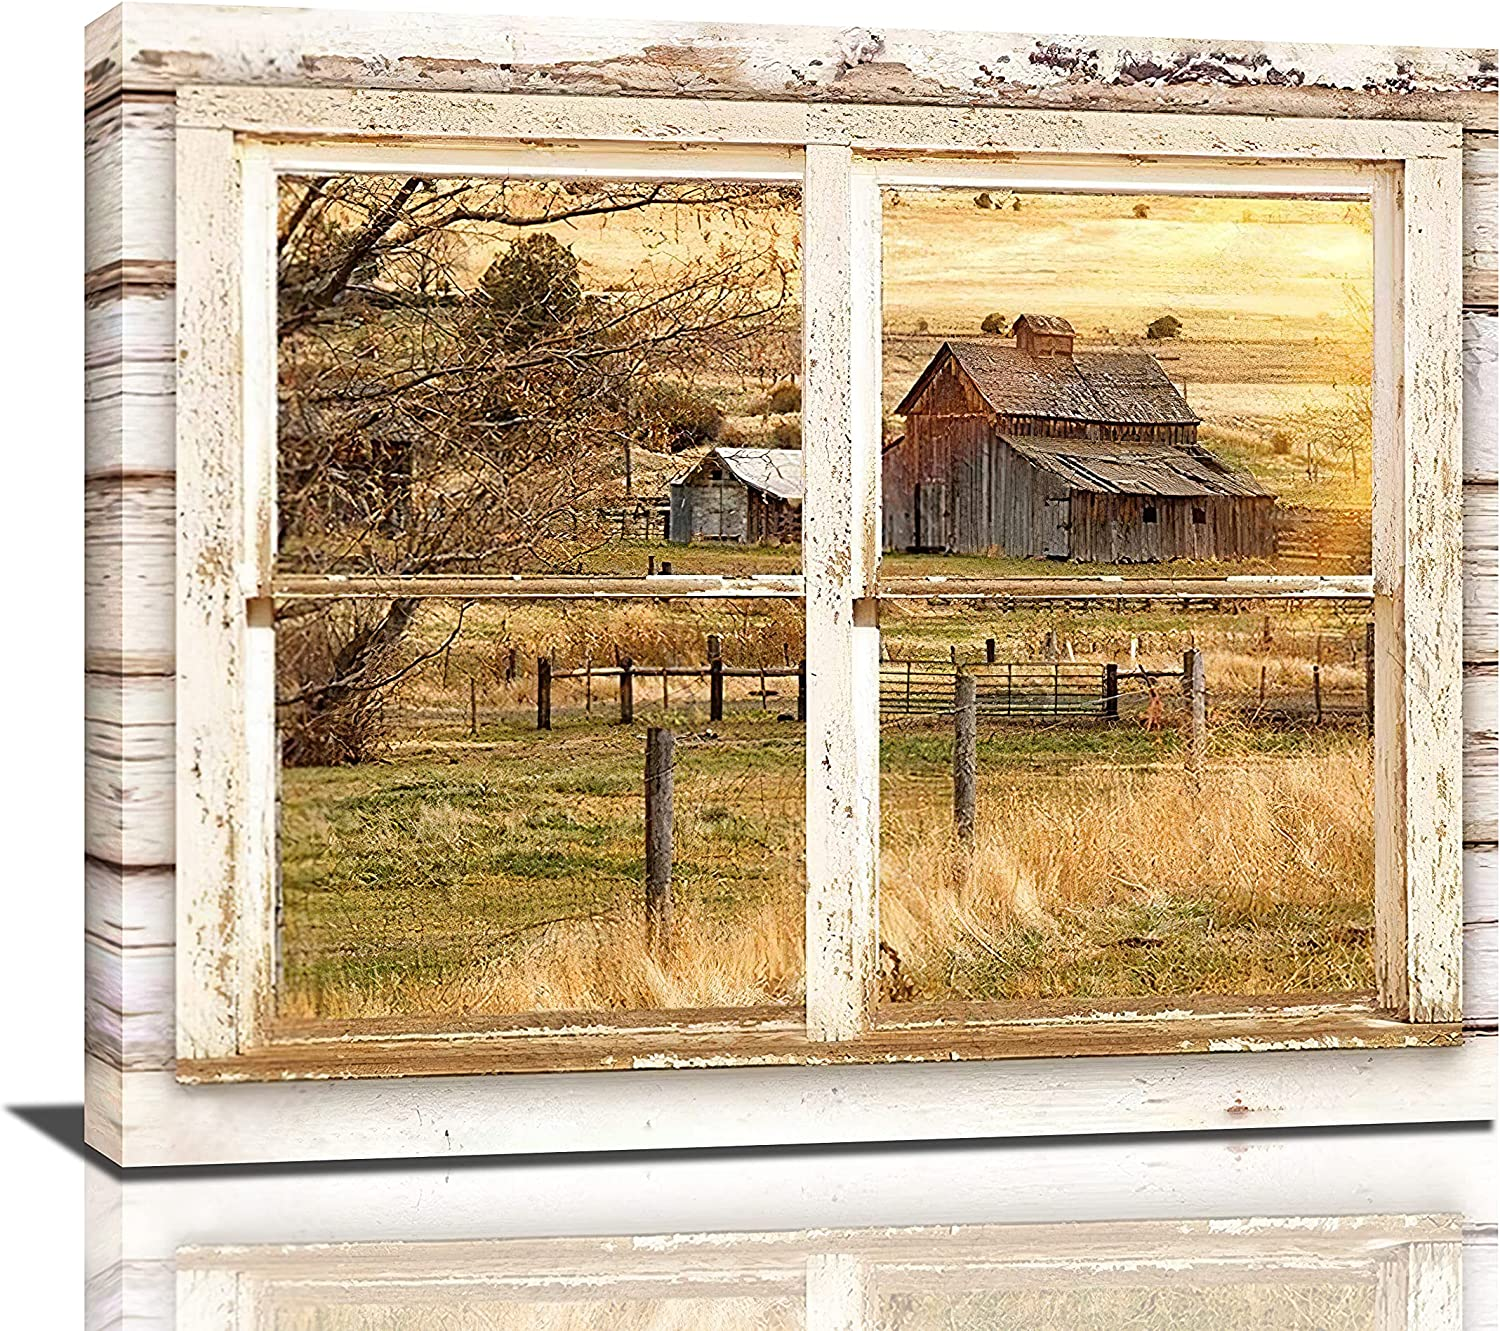 Rustic Wall Decor Barn Canvas Wall Art Hand Painted Farmhouse Painting Beautiful Barn In The Afternoon Through Rustic Window Pictures For Living Room, 24x20 Inch